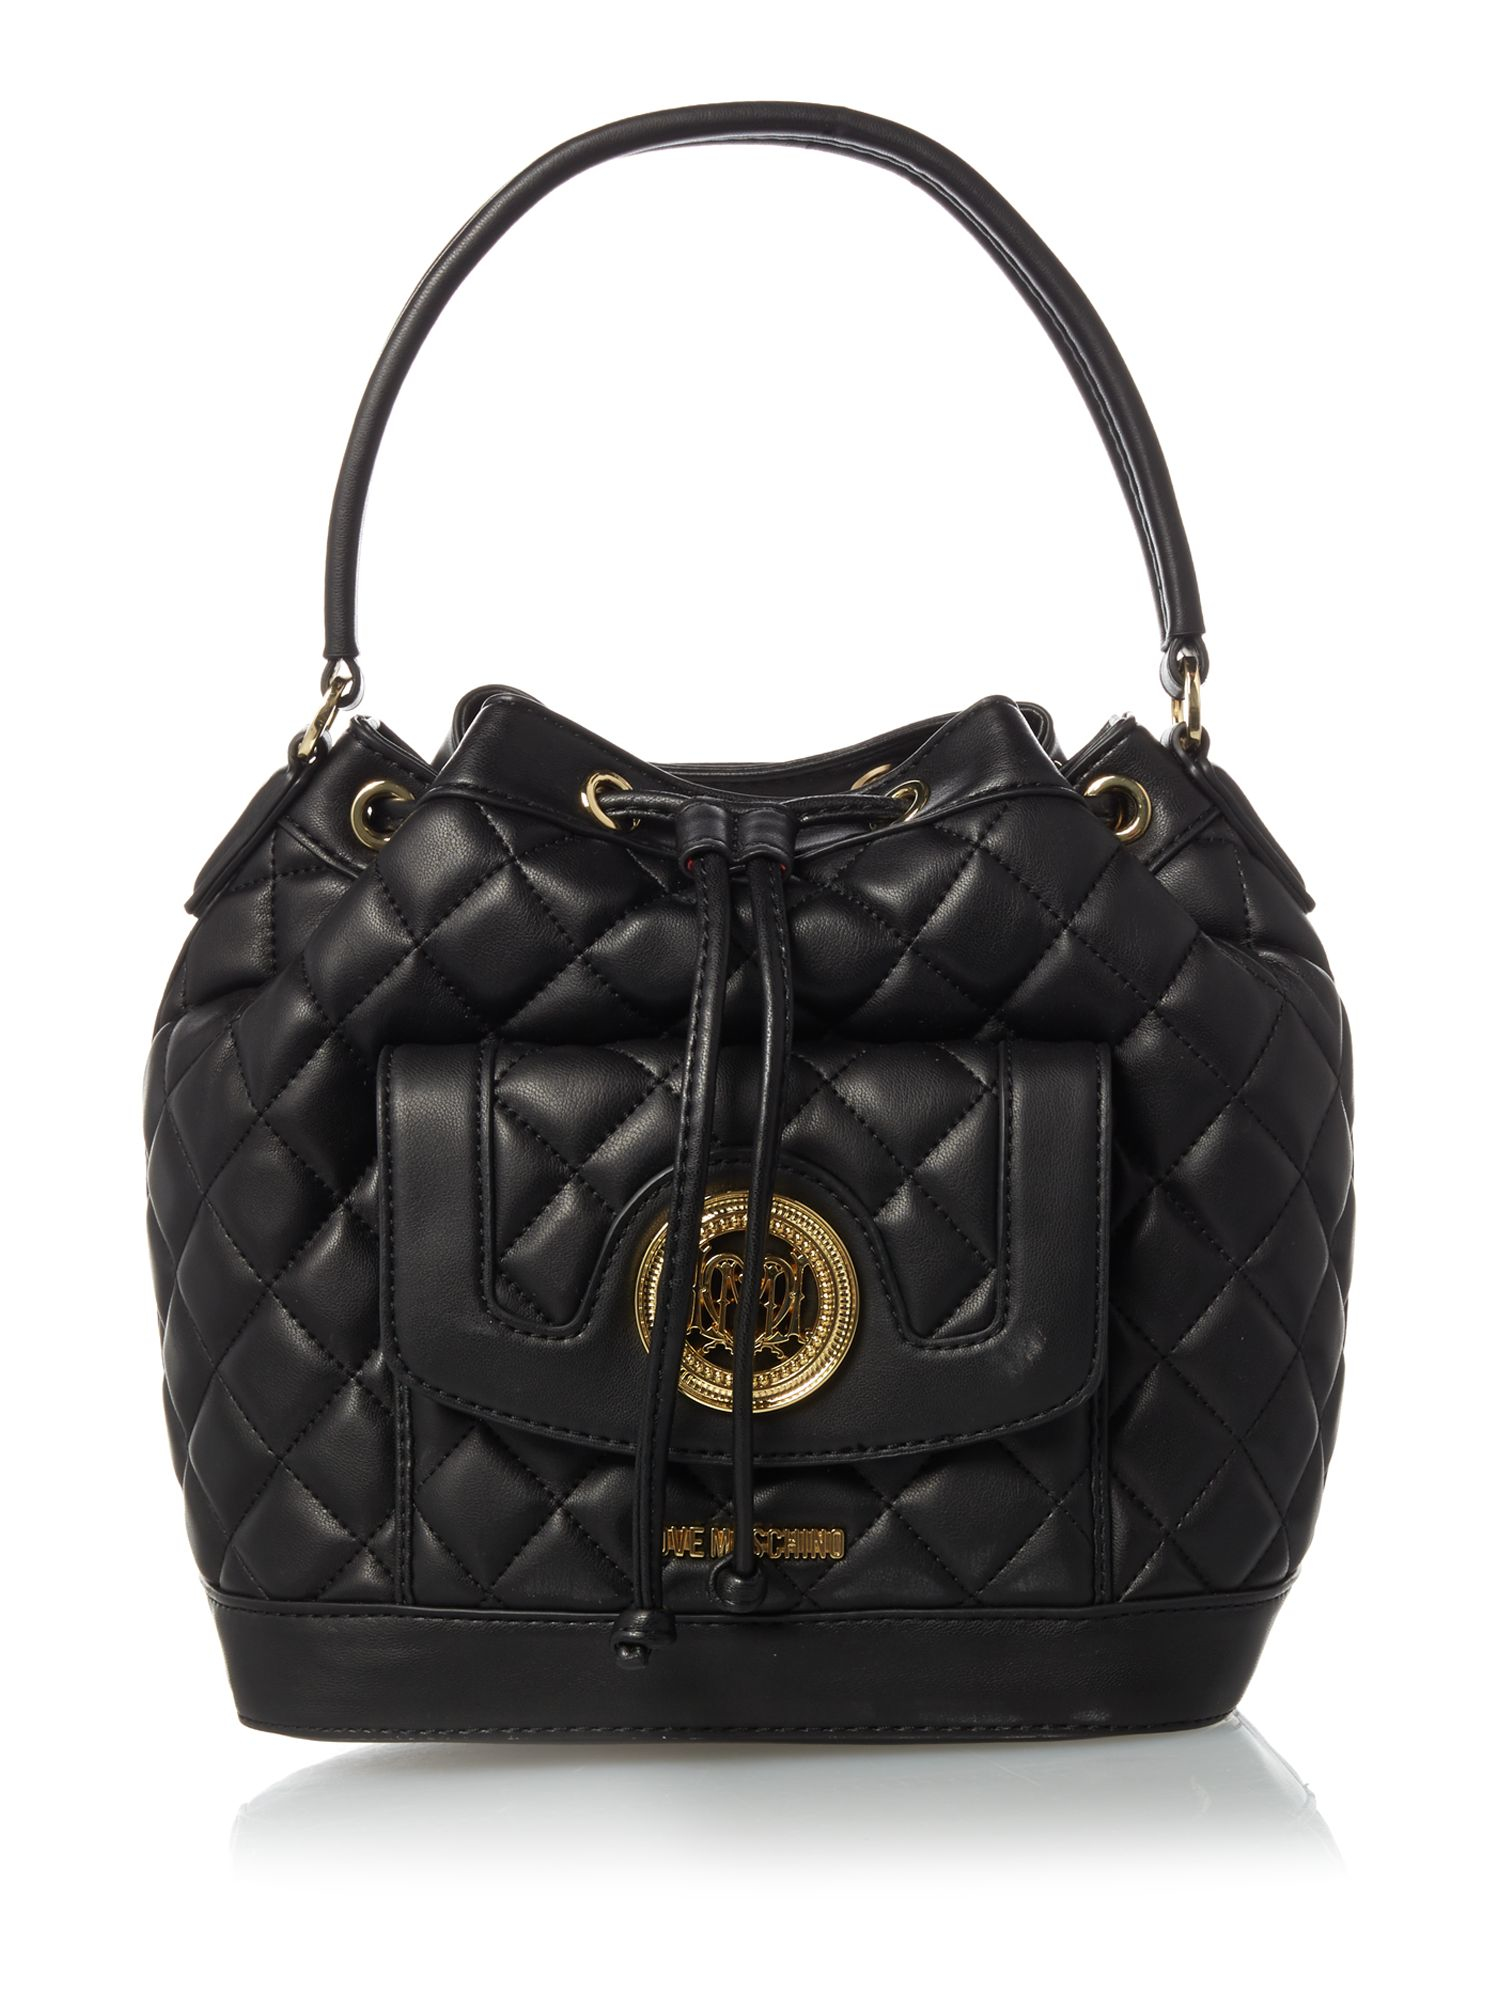 This Versace Bucket Bag is hand crafted by expert artisans using premium quality textured faux leather. This bag is a must have for every fashion lover.